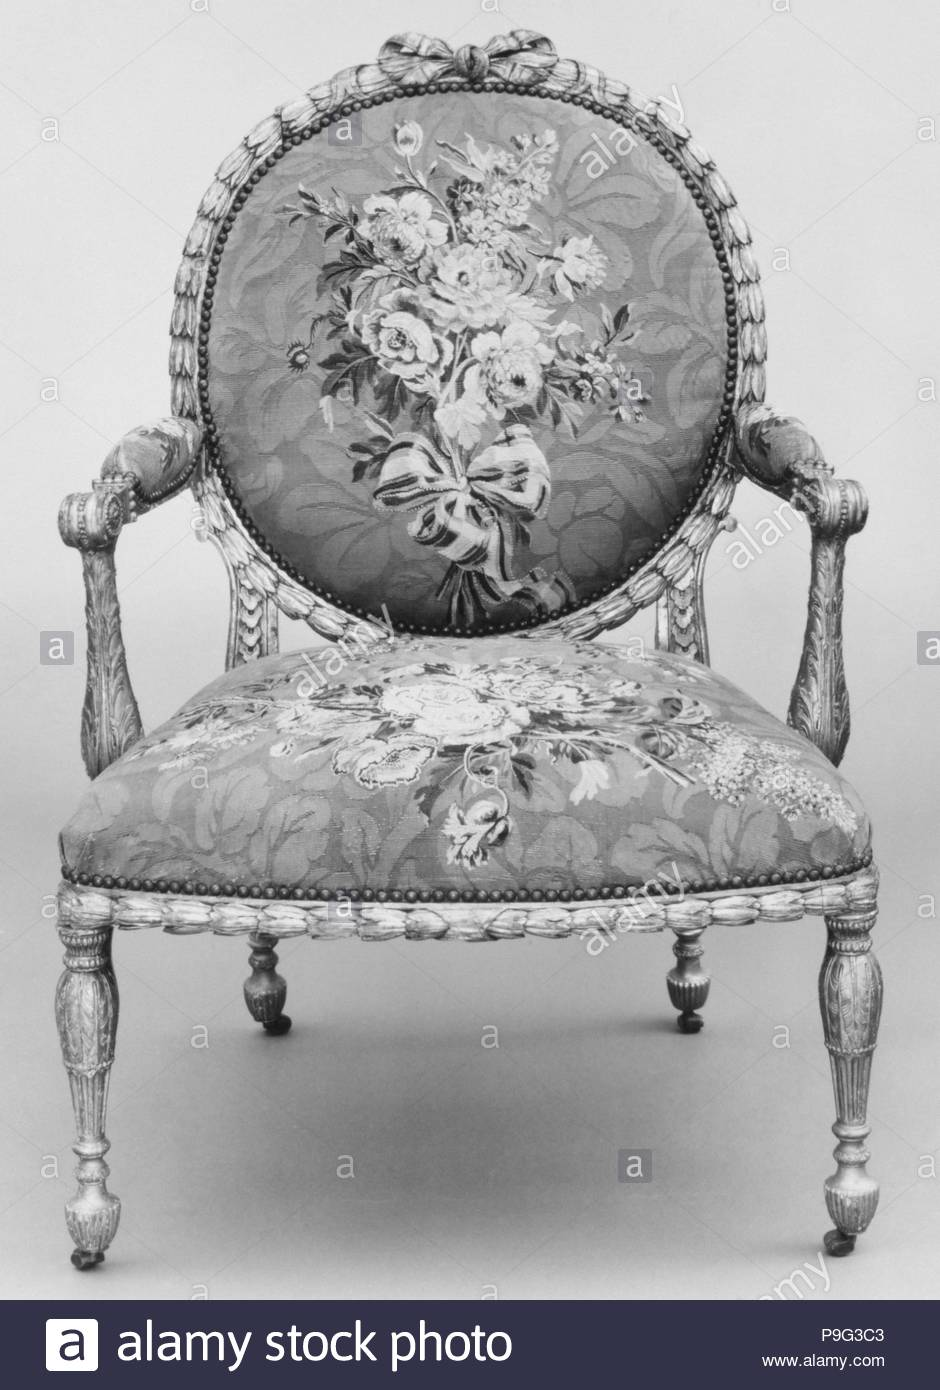 Armchair (one of a set of six), 1769–71, British and French, Gilded fruitwood; wool and silk (22-24 warps per inch, 9-10 per centimeter), 41 1/2 × 28 × 29 in. (105.4 × 71.1 × 73.7 cm), Woodwork-Furniture, John Mayhew (British, 1736–1811), and William Ince (British, active ca. 1758/59–1794, died 1804), Workshop of Jacques Neilson (French, 1714–1788). - Stock Image